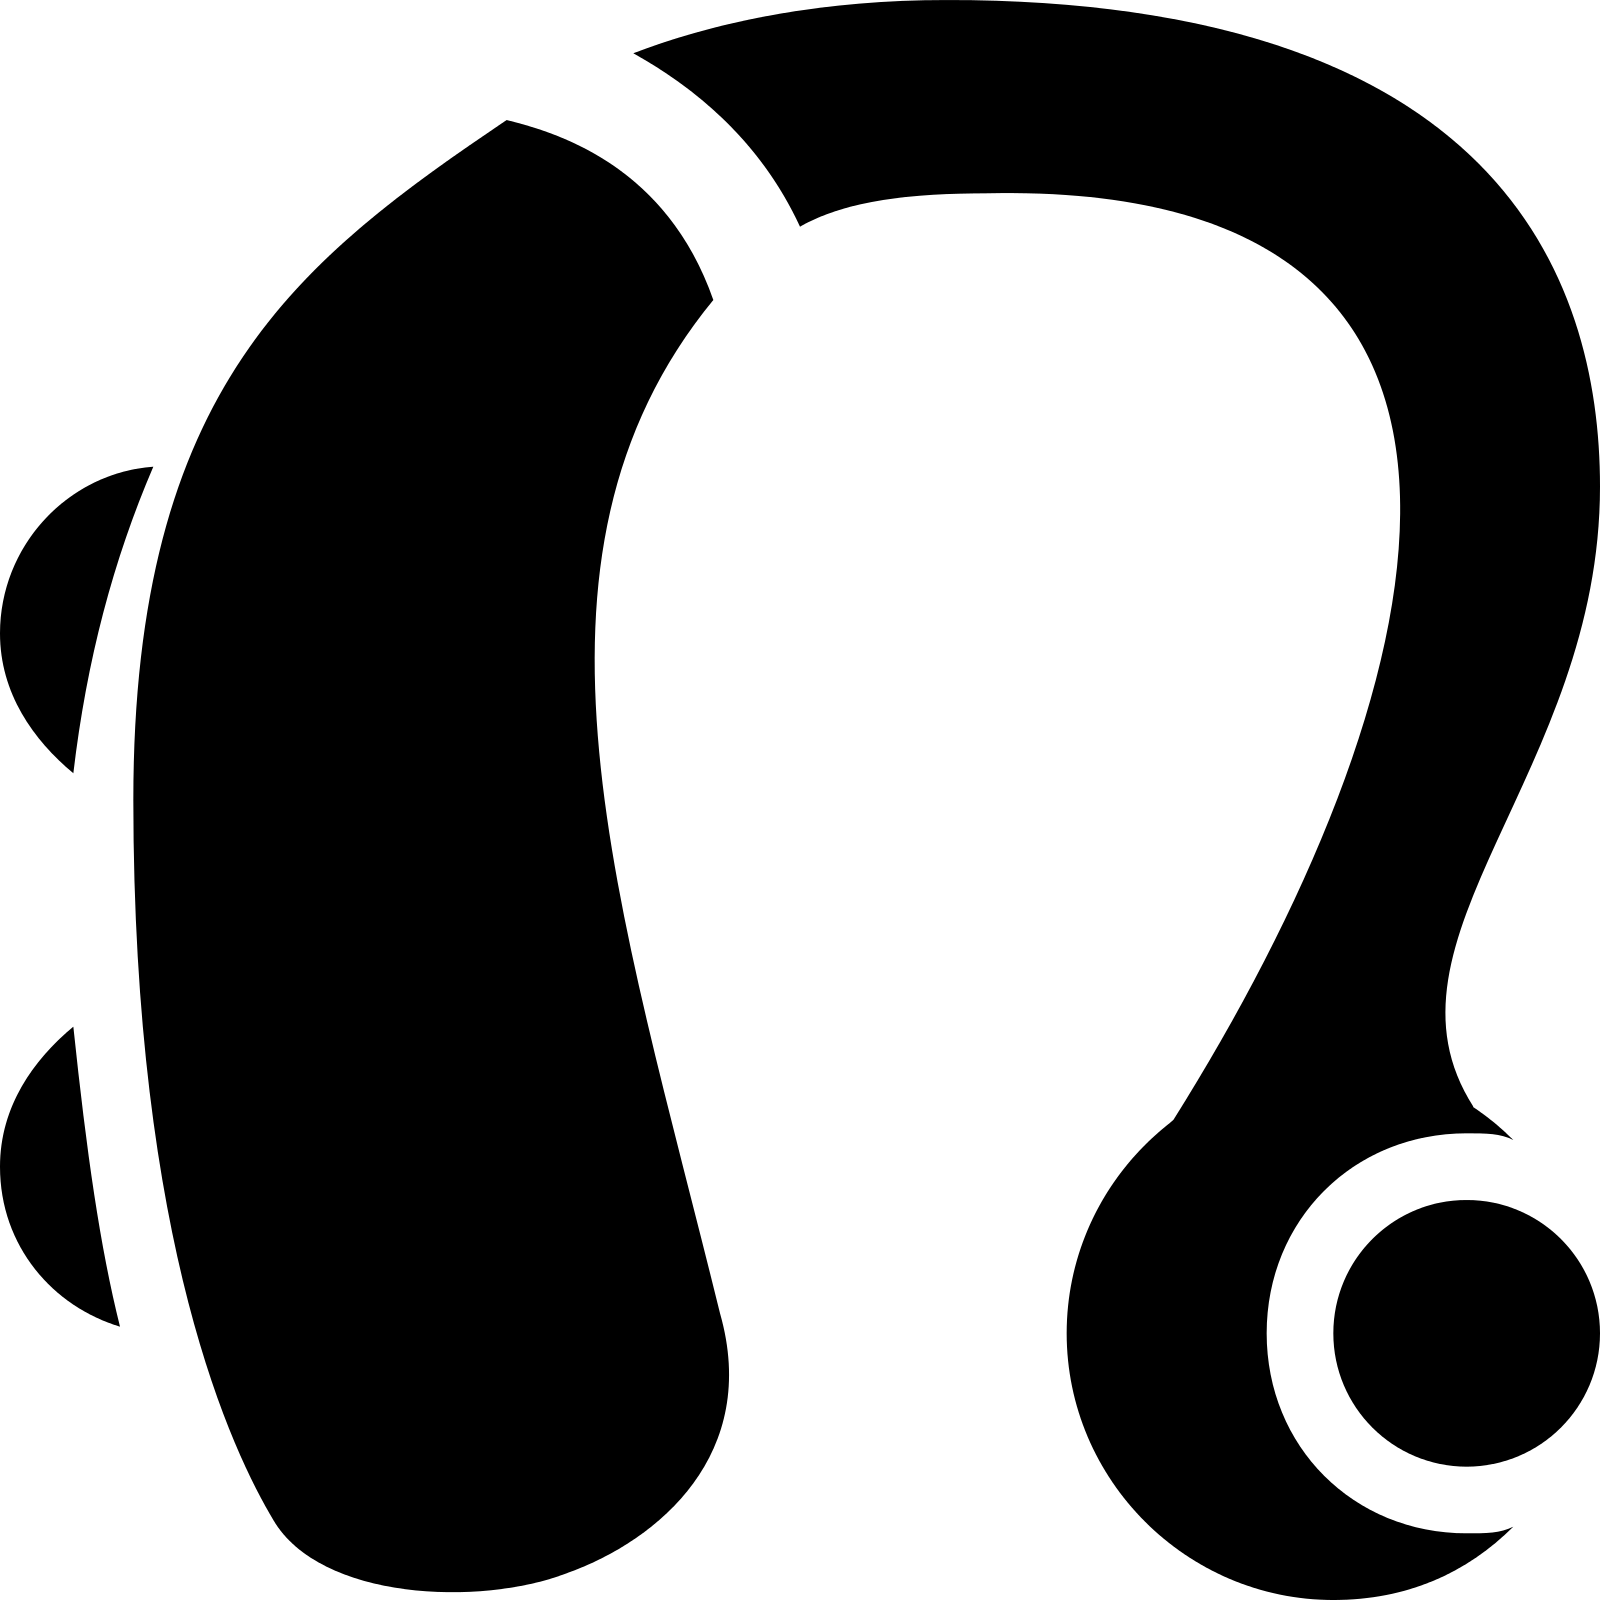 Noise clipart hard hearing Sound of for aid amplify